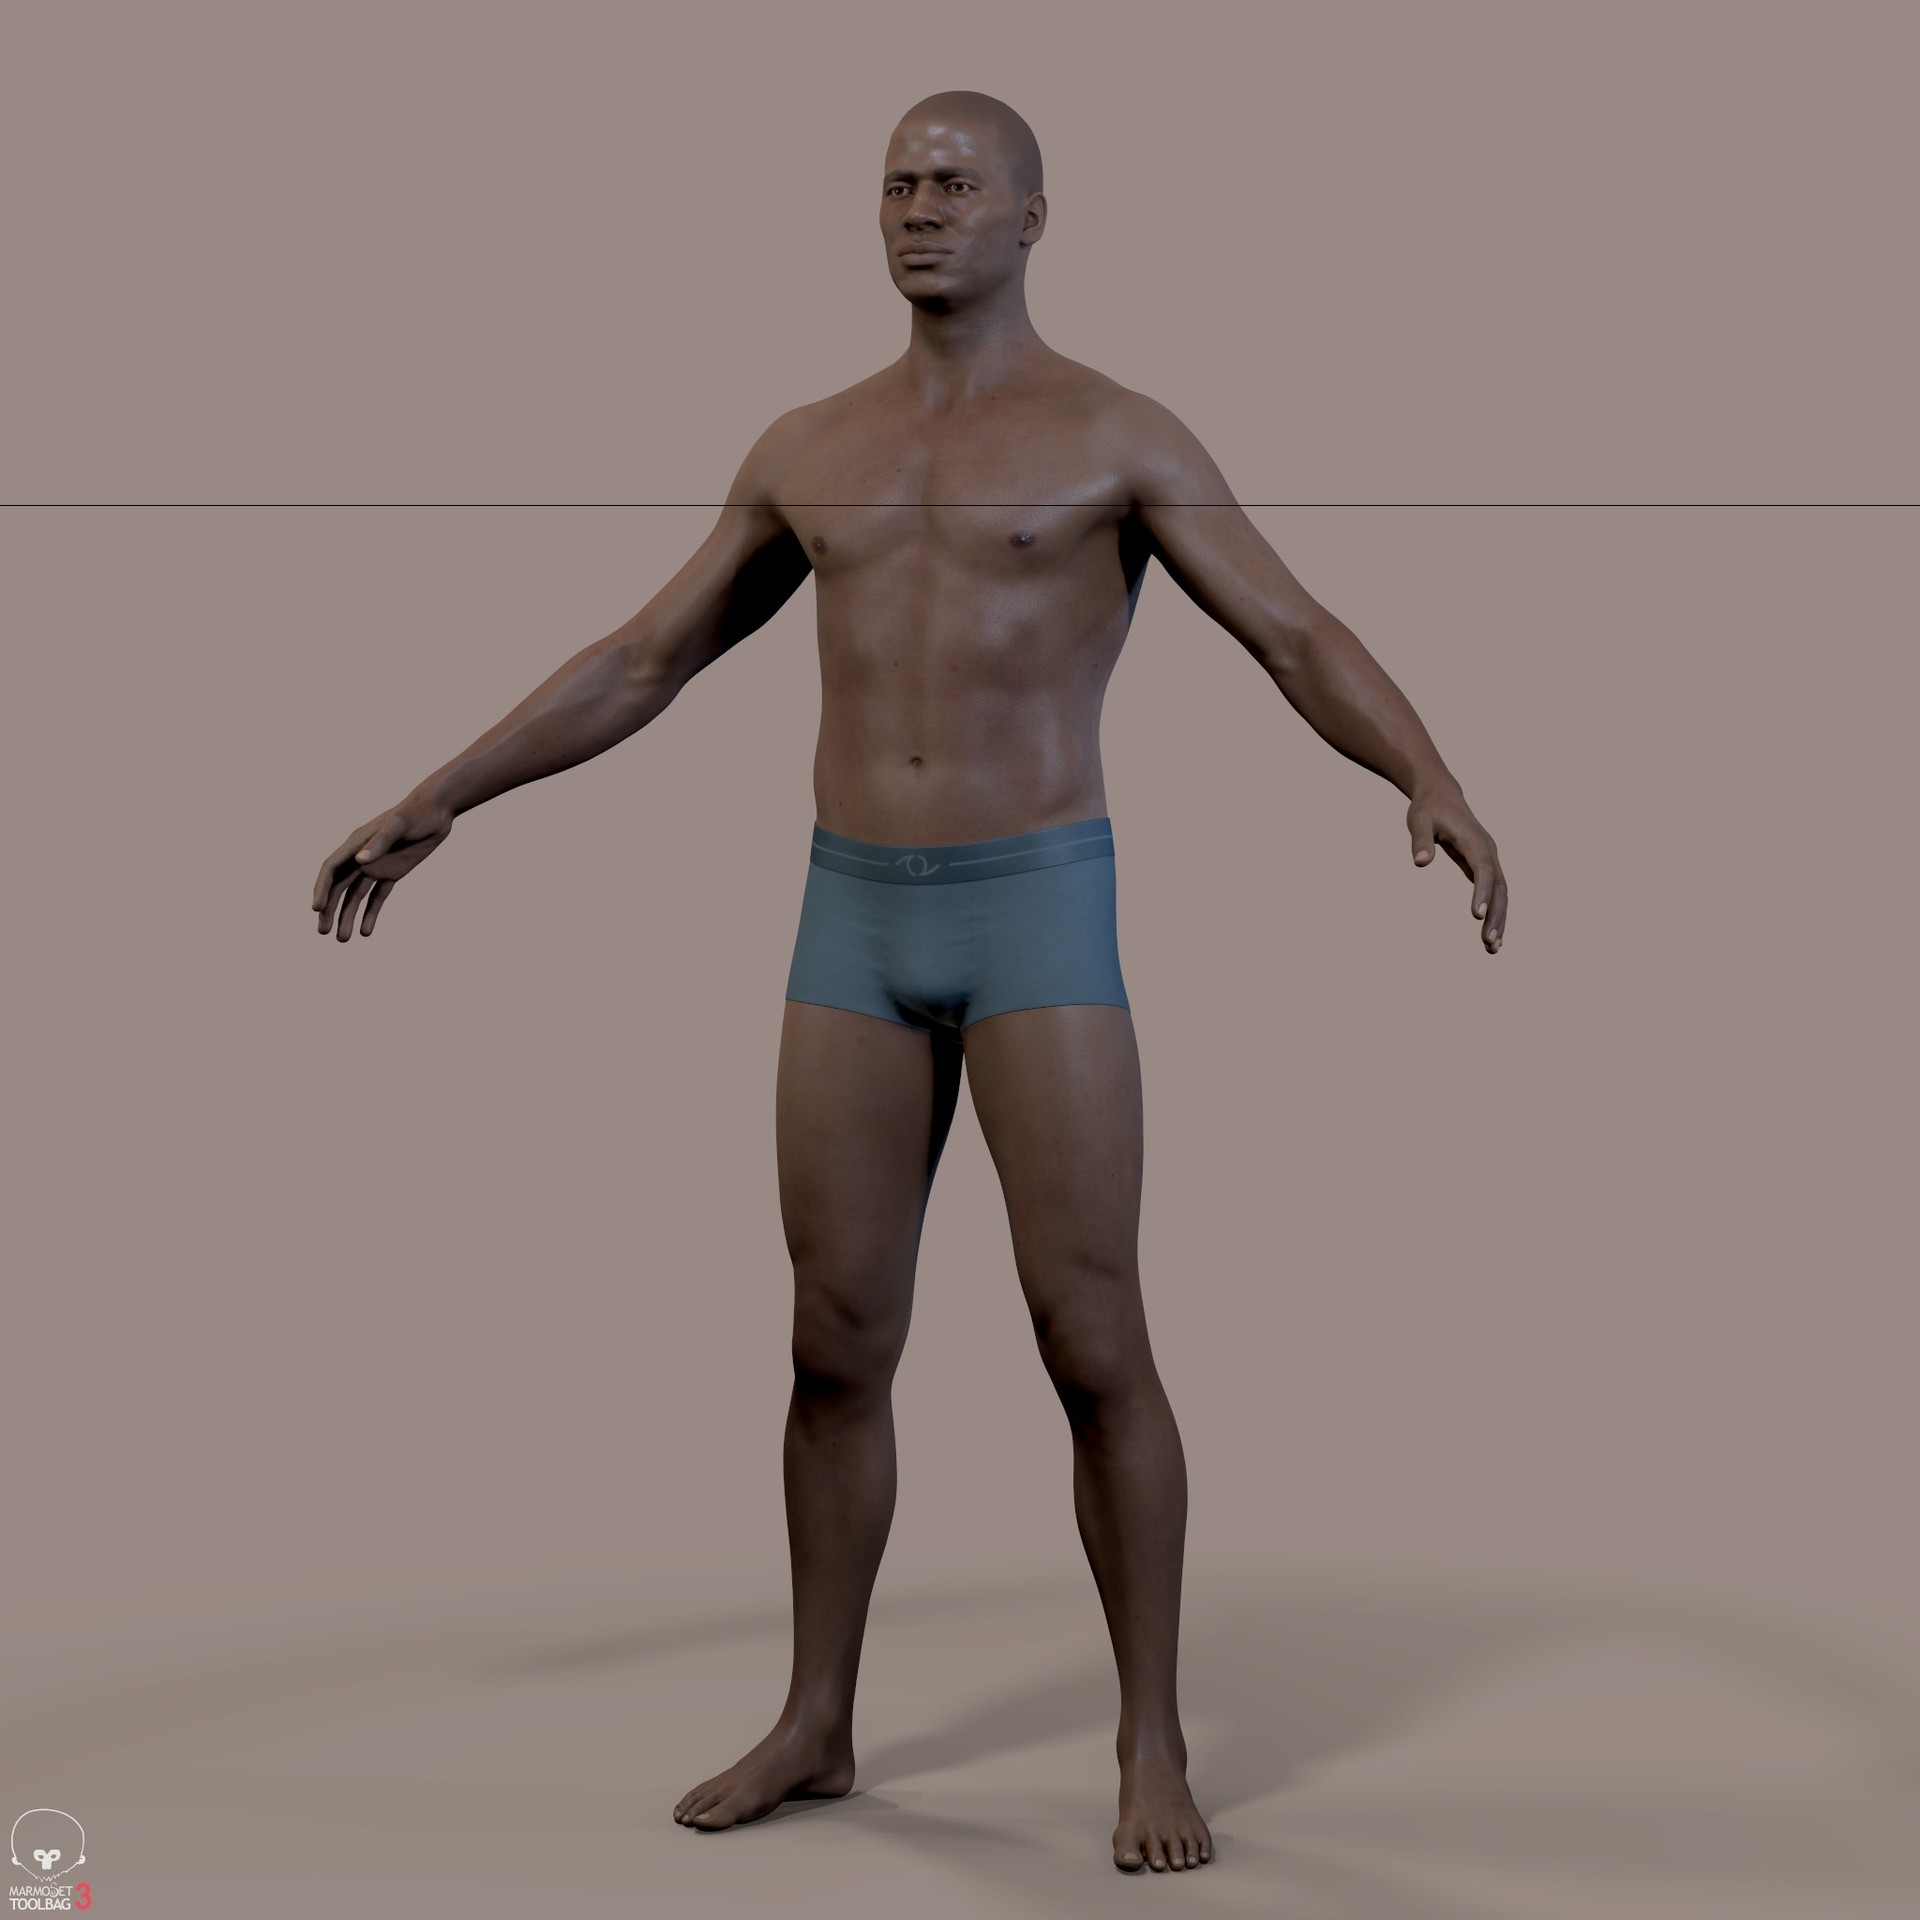 Alex lashko averageblackmalebody by alexlashko 00000